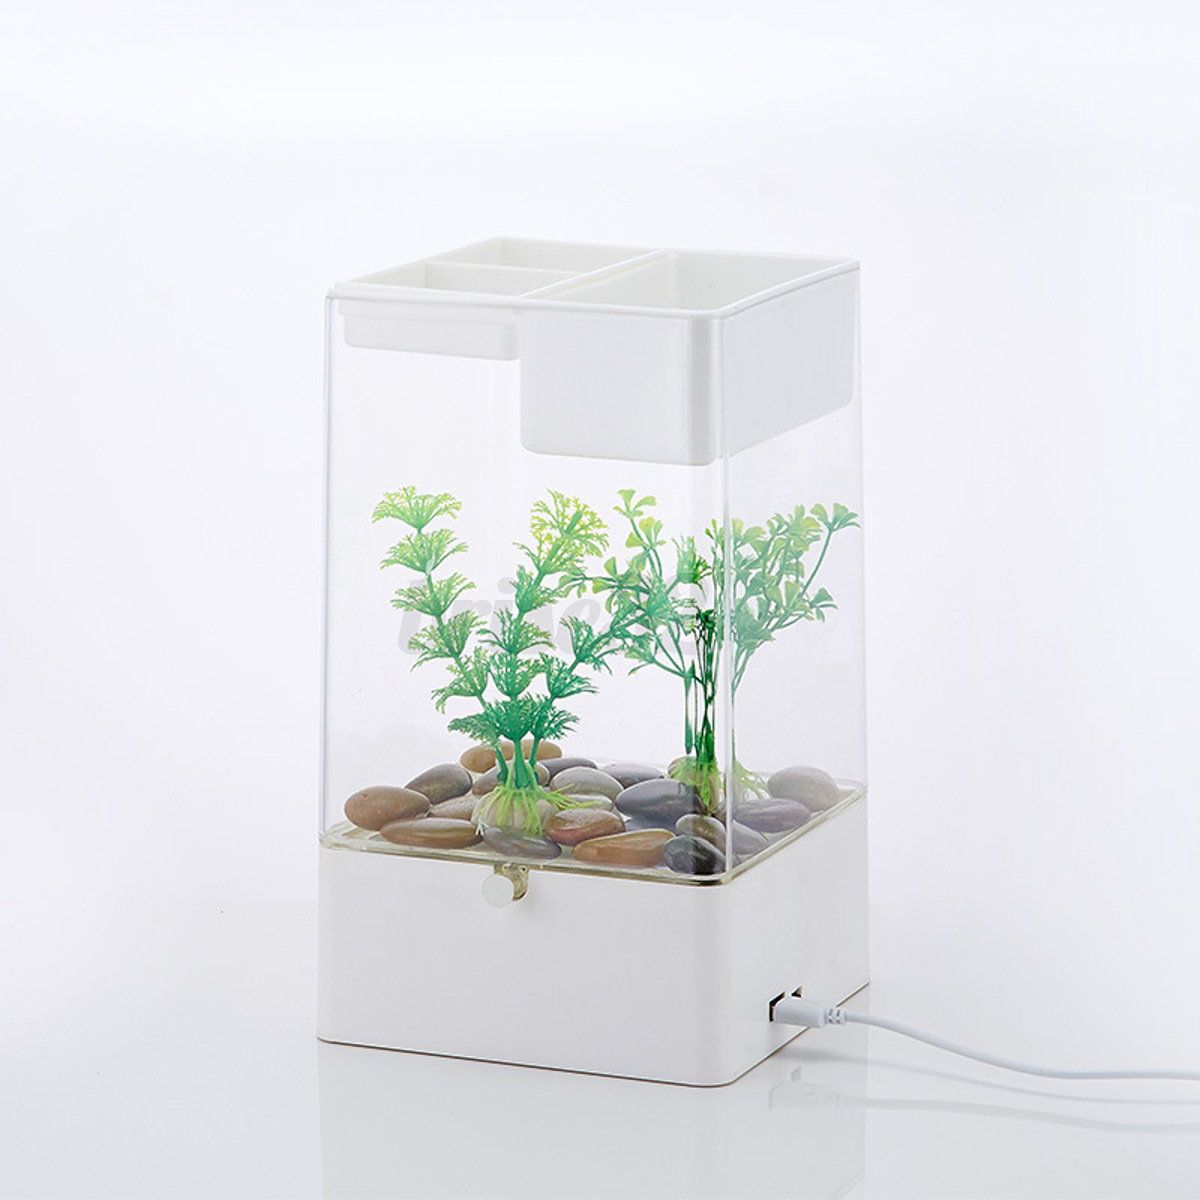 led light square usb interface aquarium ecological office desk fish tank filter ebay. Black Bedroom Furniture Sets. Home Design Ideas